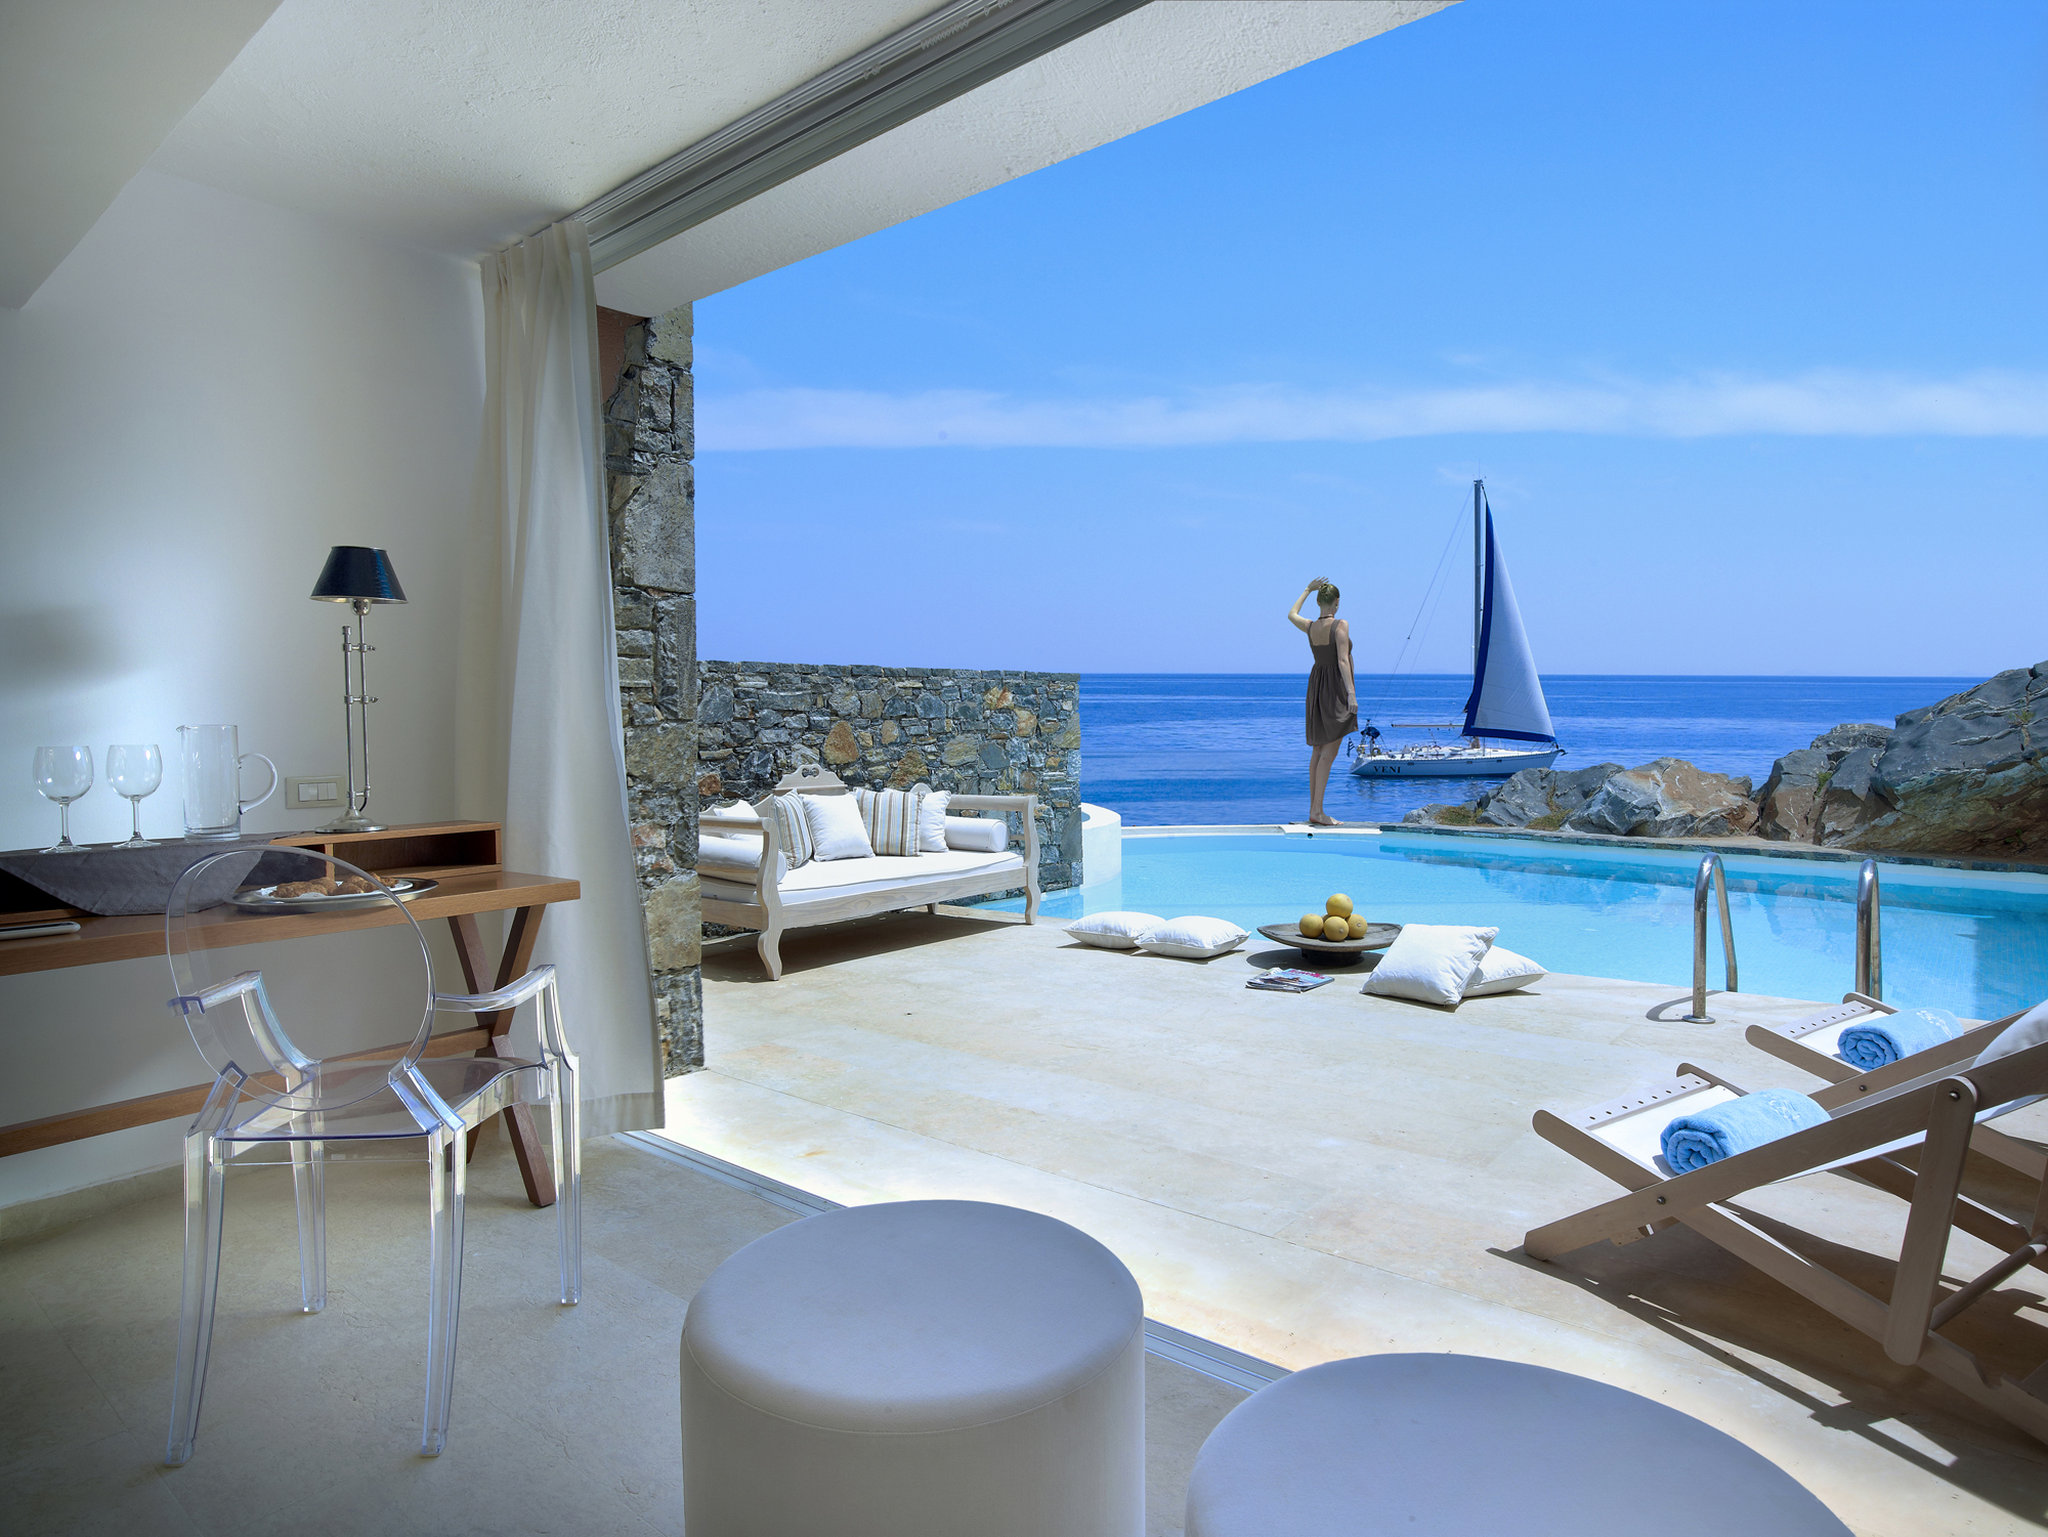 Small luxury hotels in the world the best for this season for Luxury beach hotels